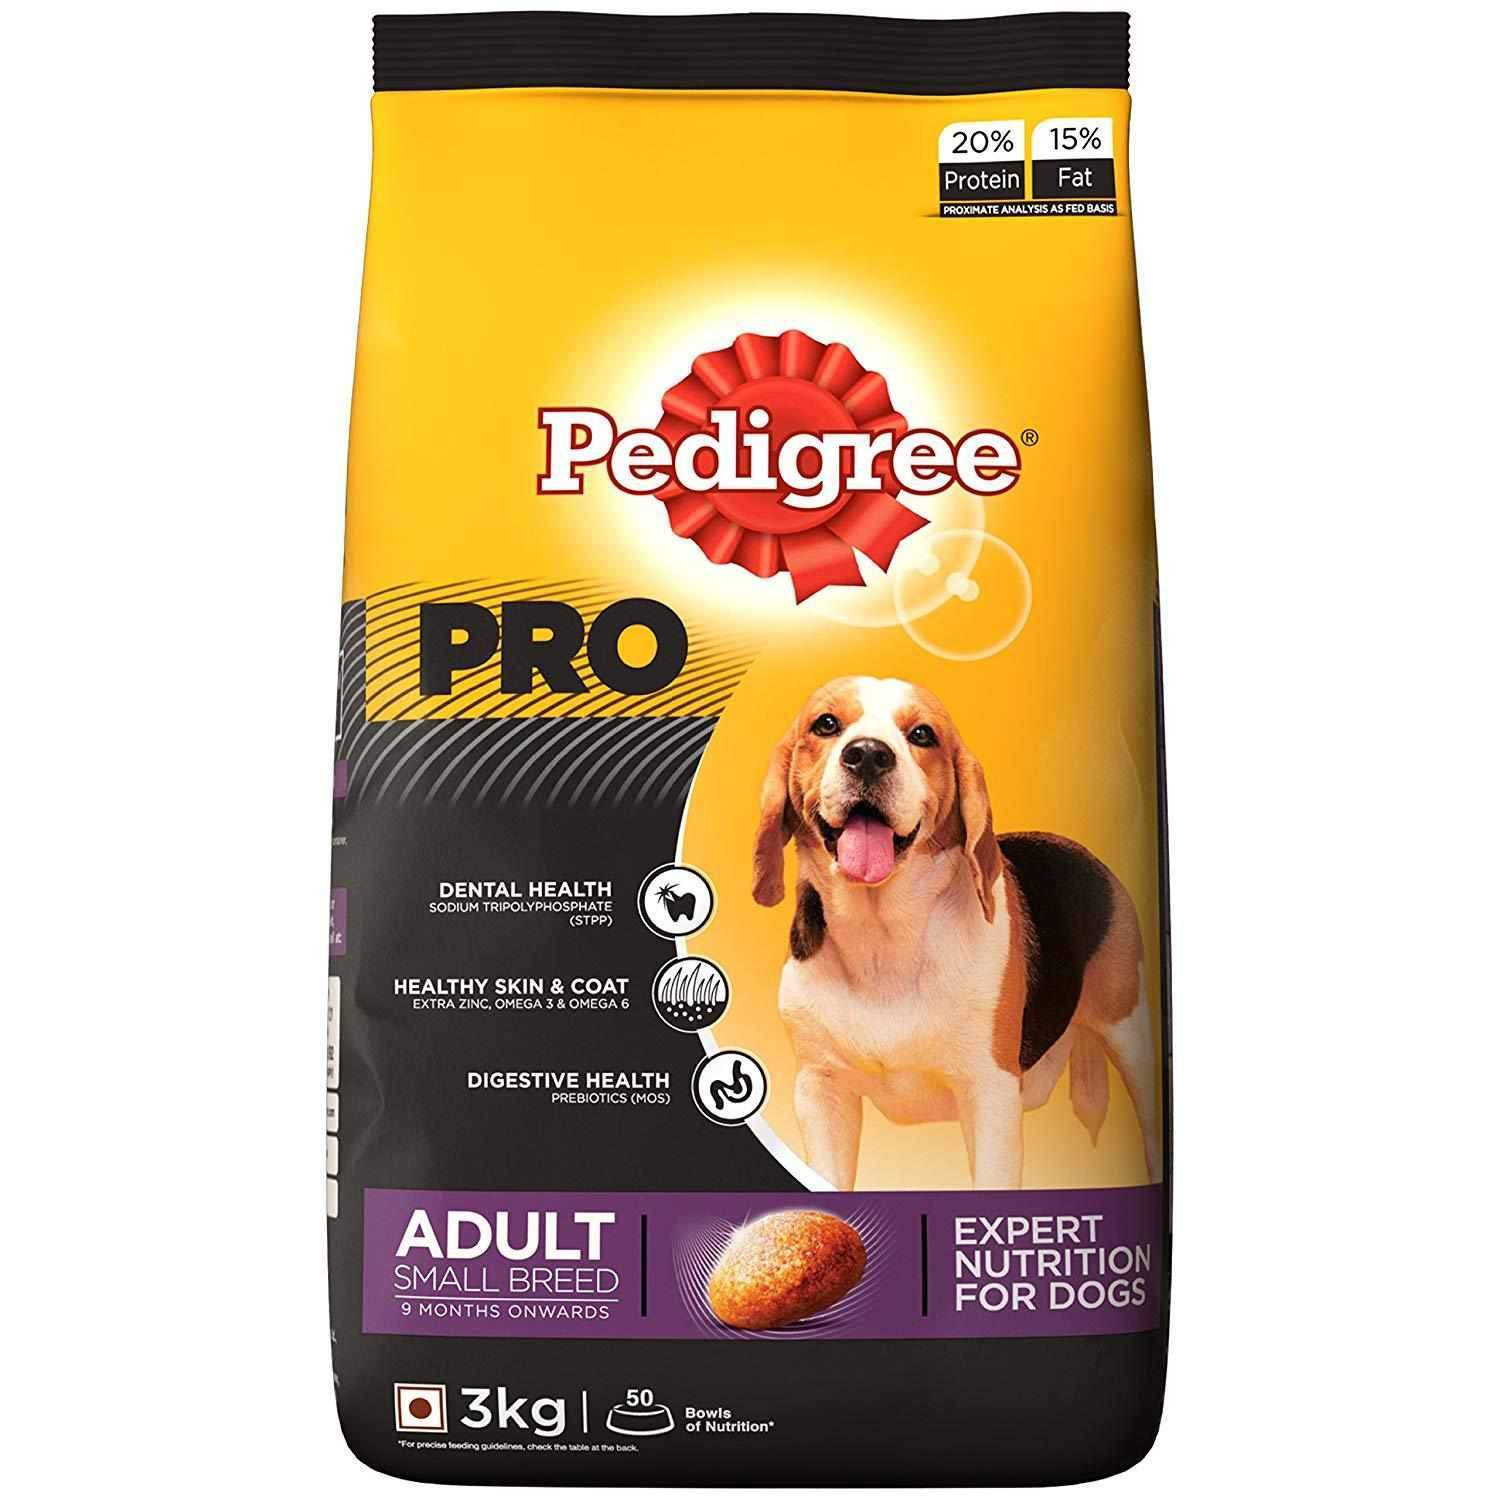 Jolly Wagger For Small Breed Adult Dog With Pedigree Pro Adult Small Breed 4.2kg (3kg + 1.2kg)